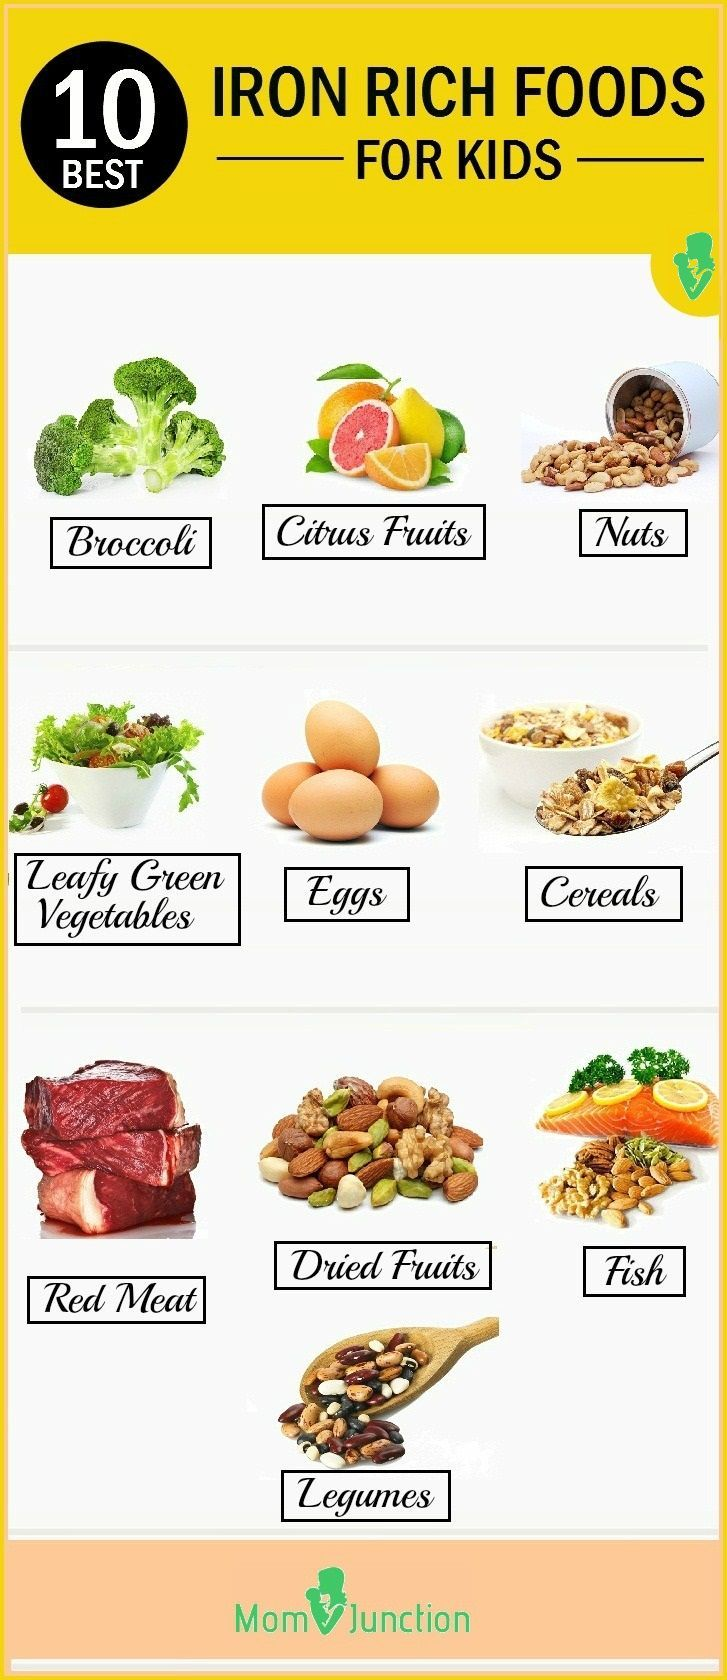 high iron rich foods for babies